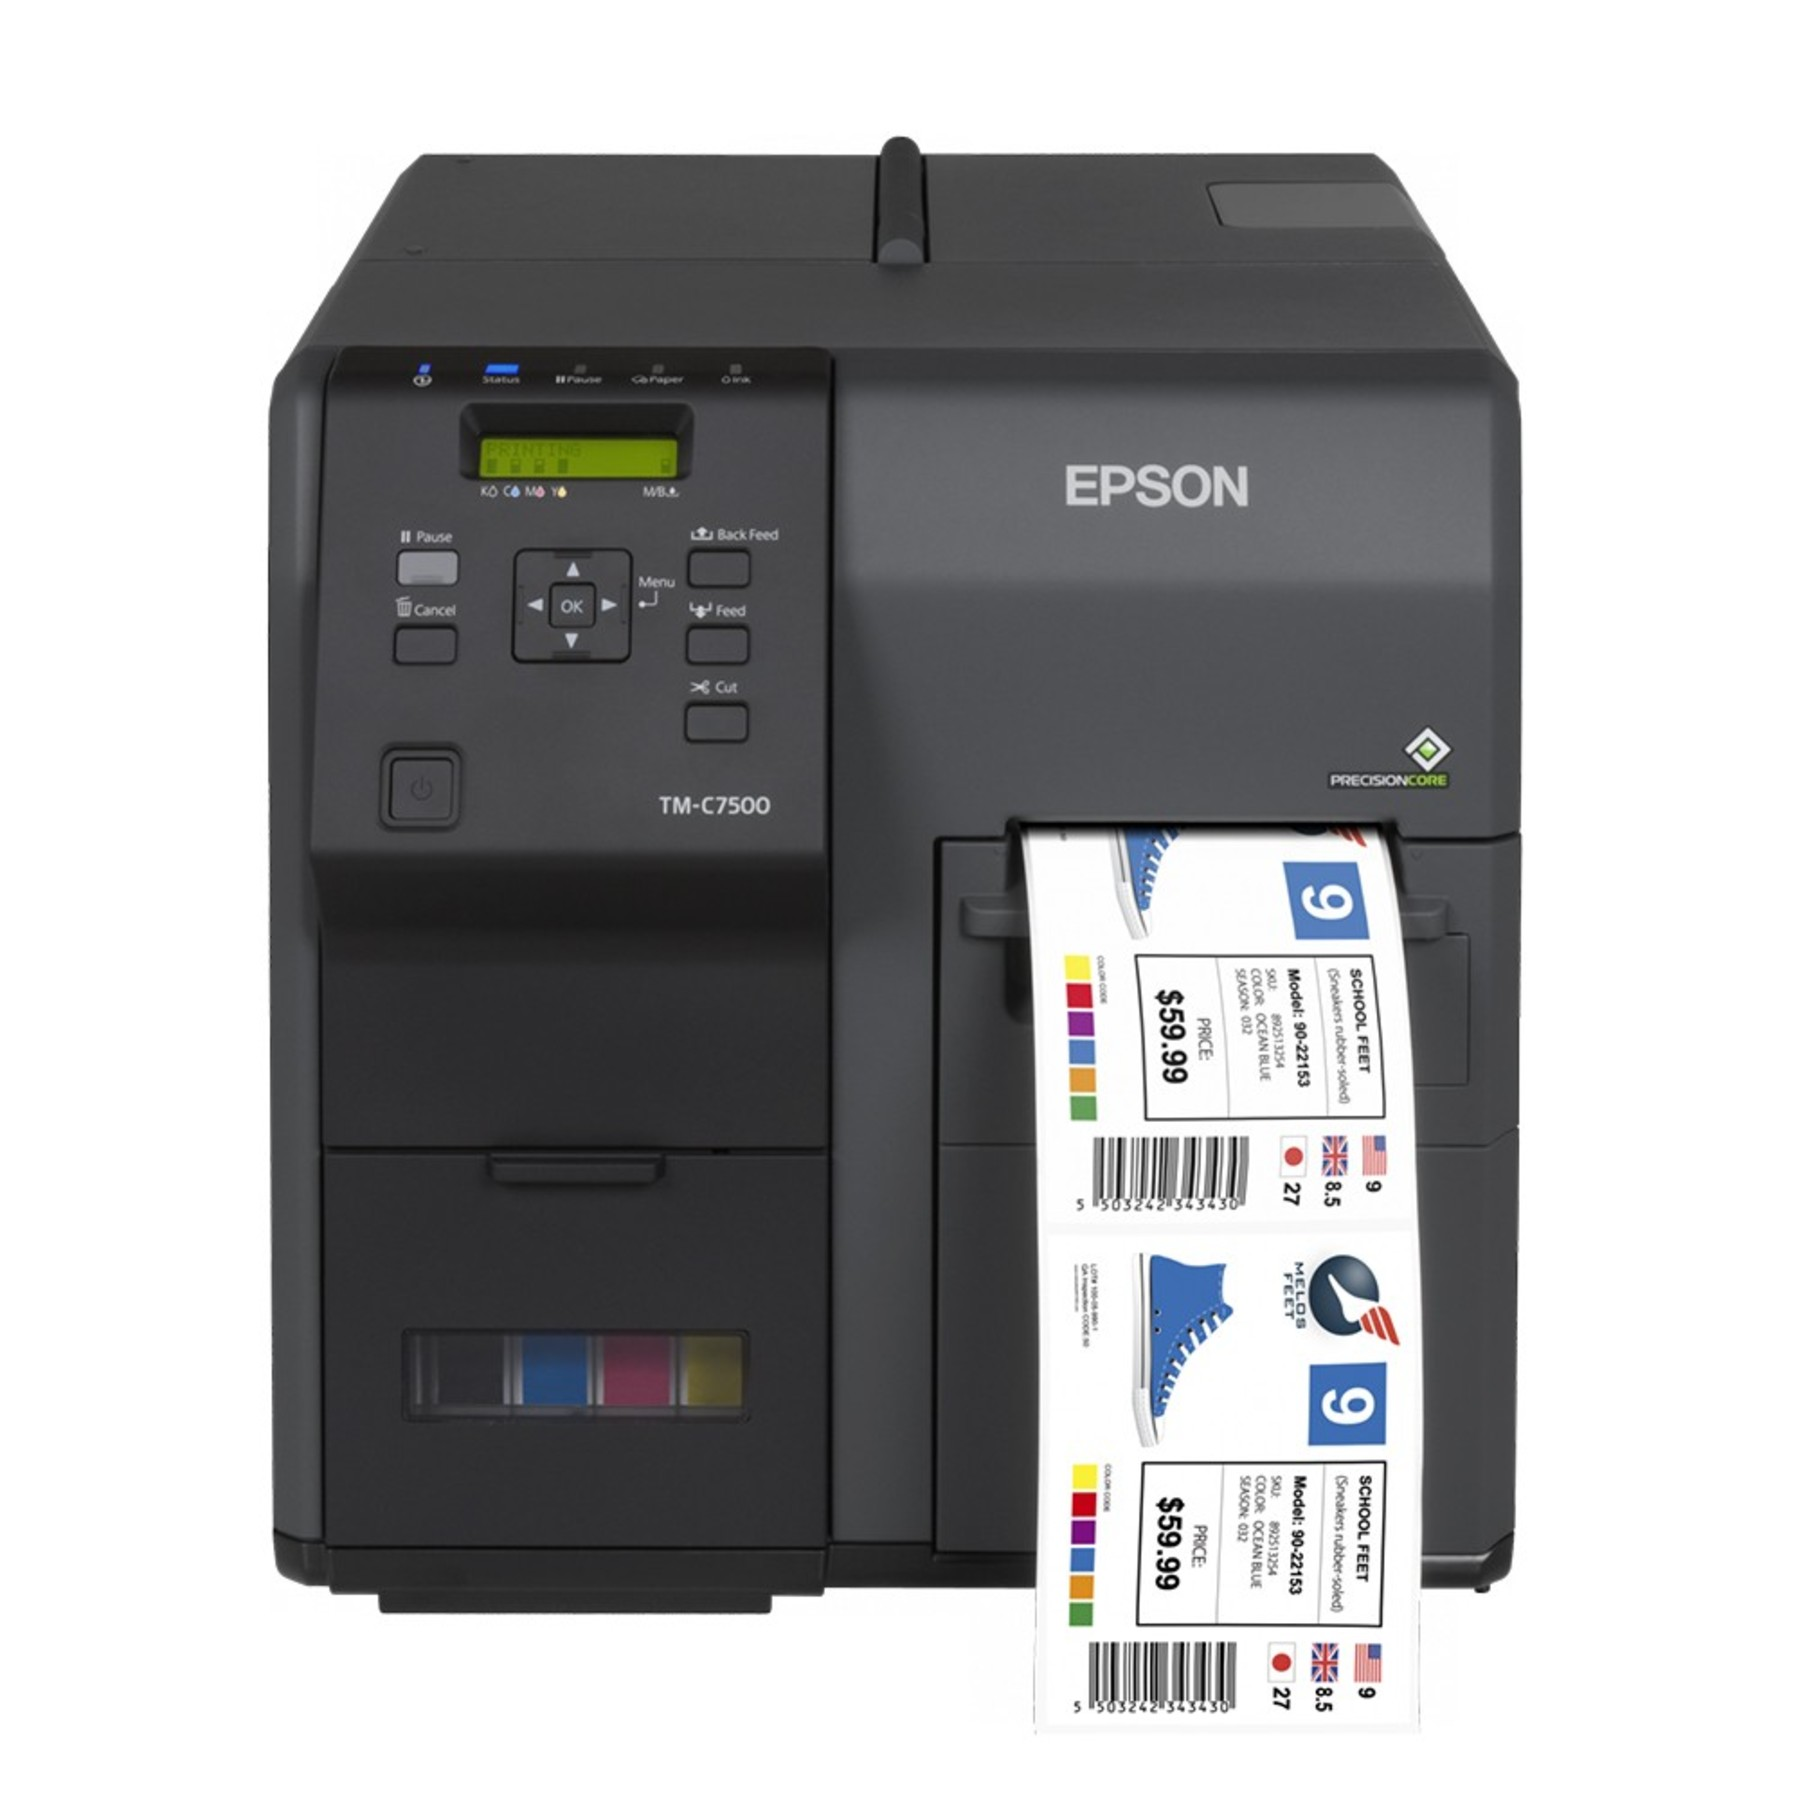 It's just a picture of Smart Manufacturing Label Printing Software